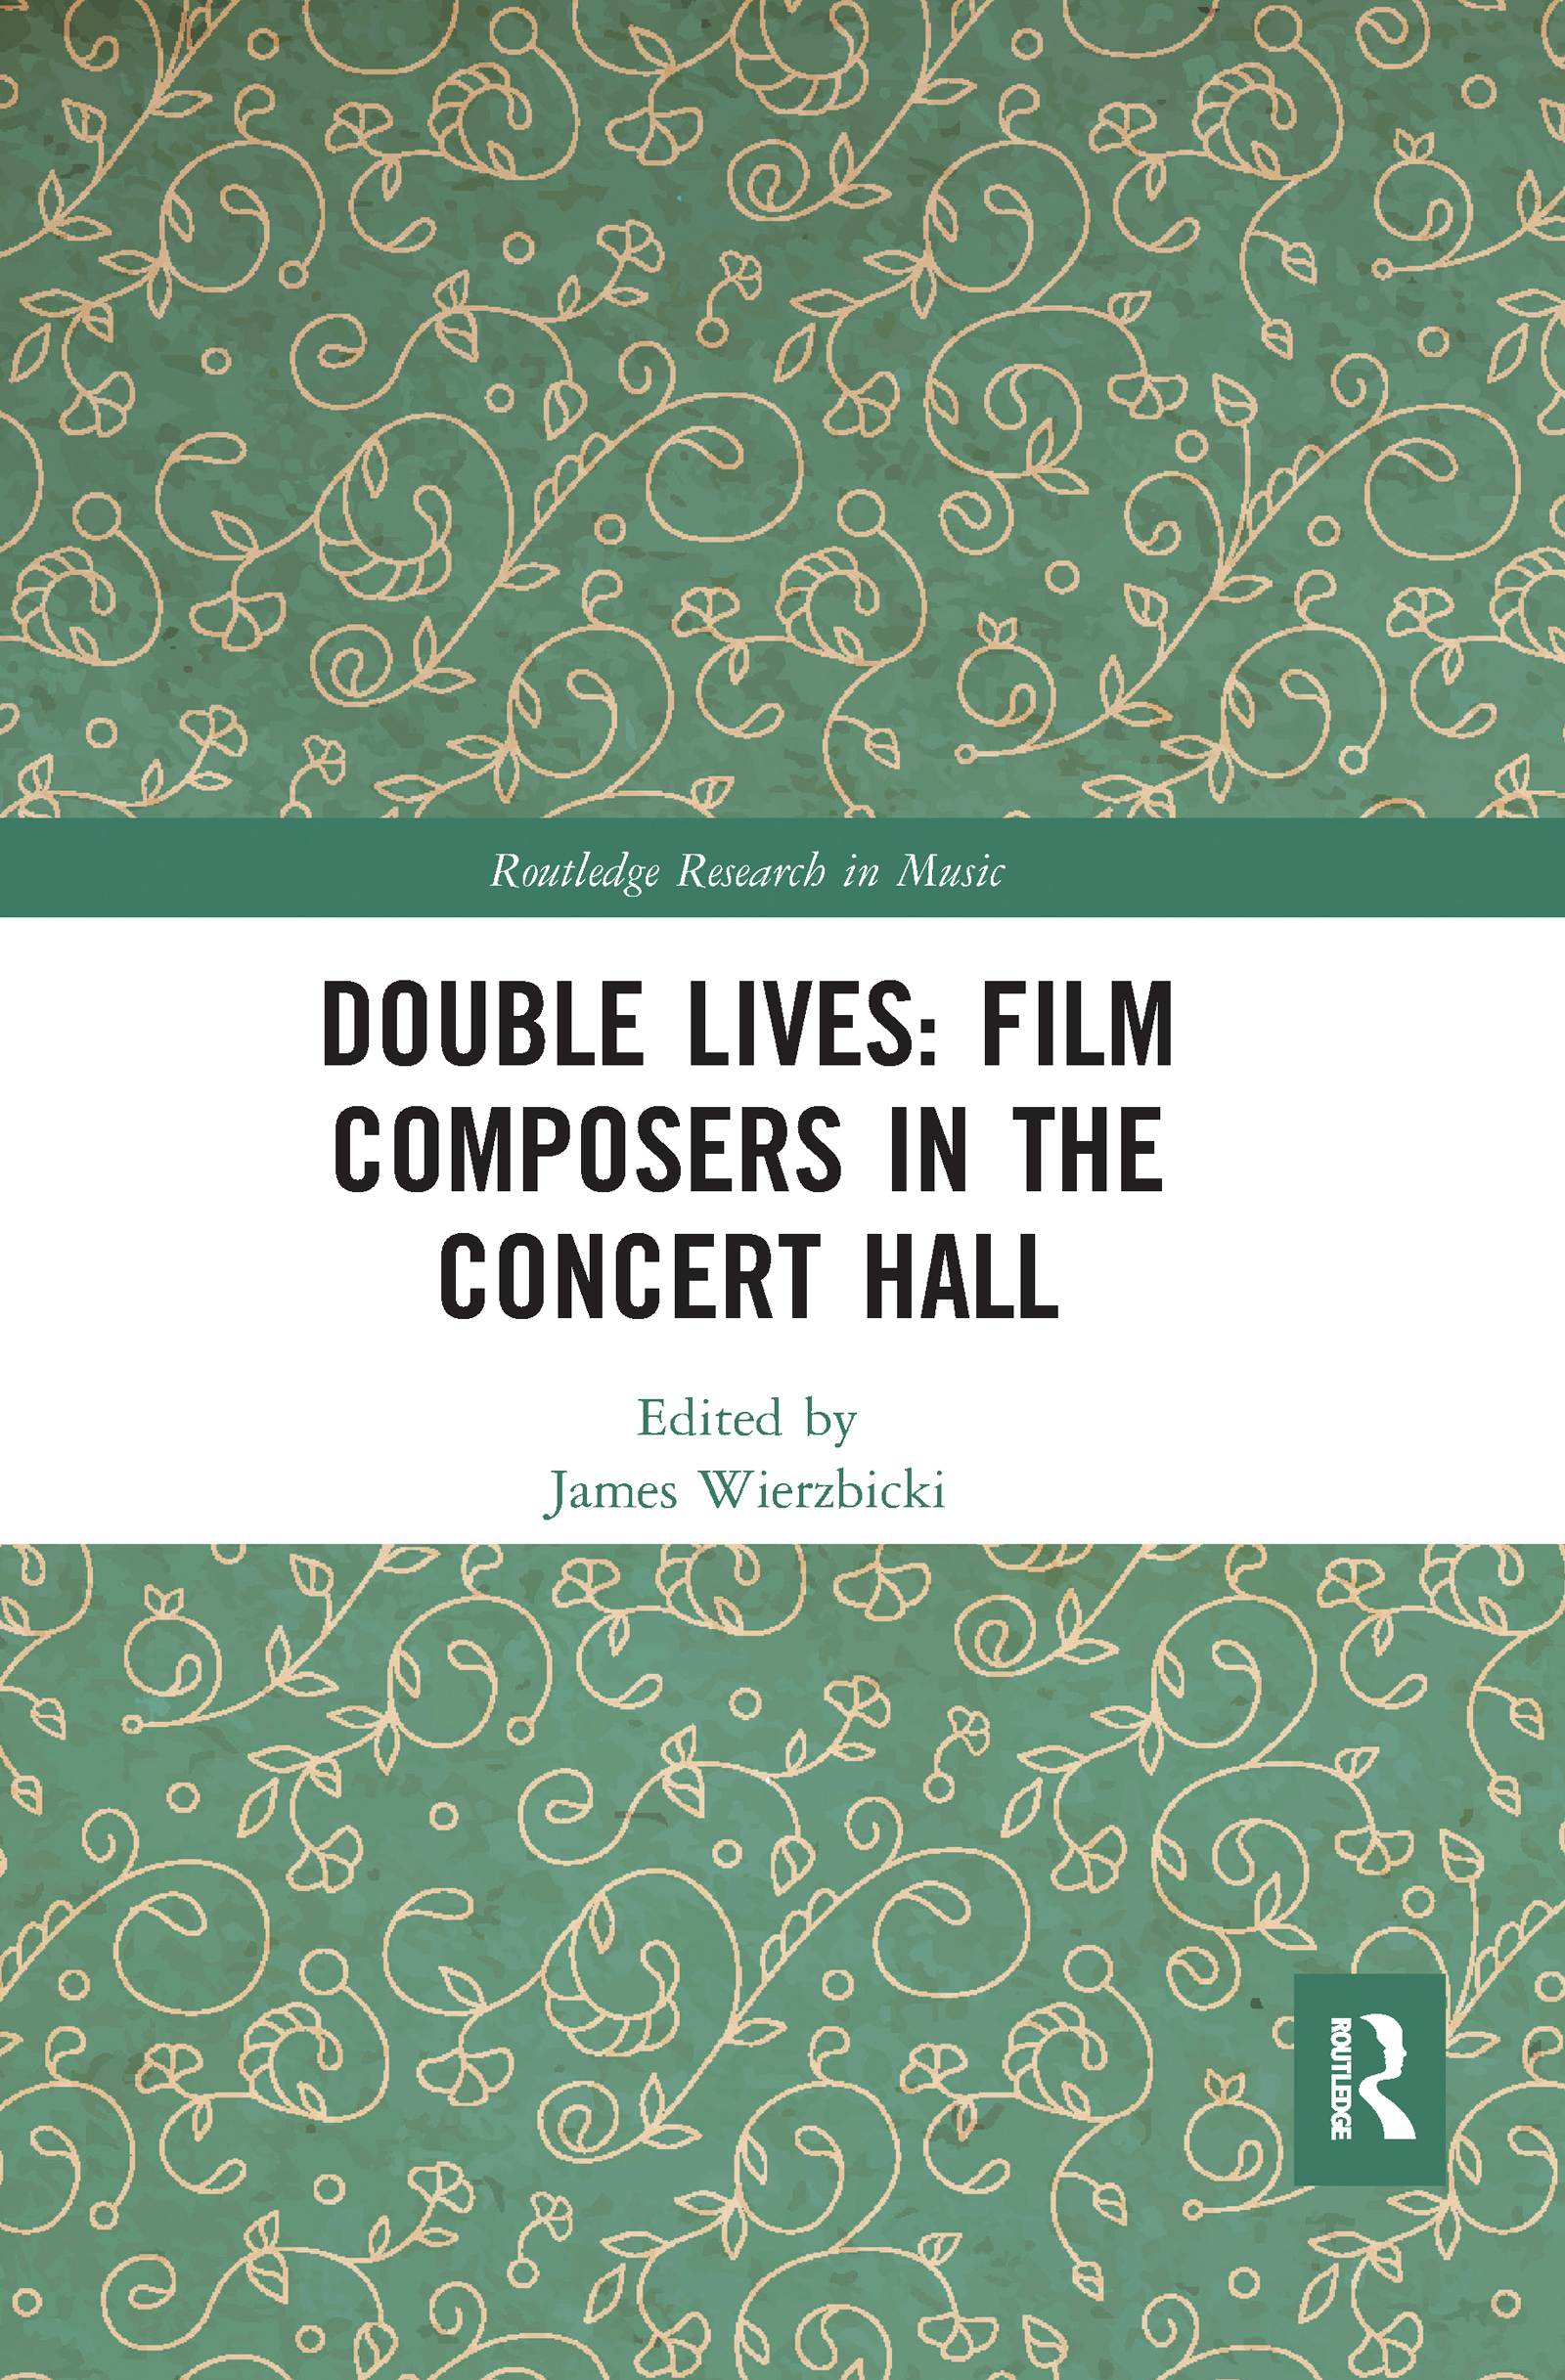 Double Lives: Film Composers in the Concert Hall